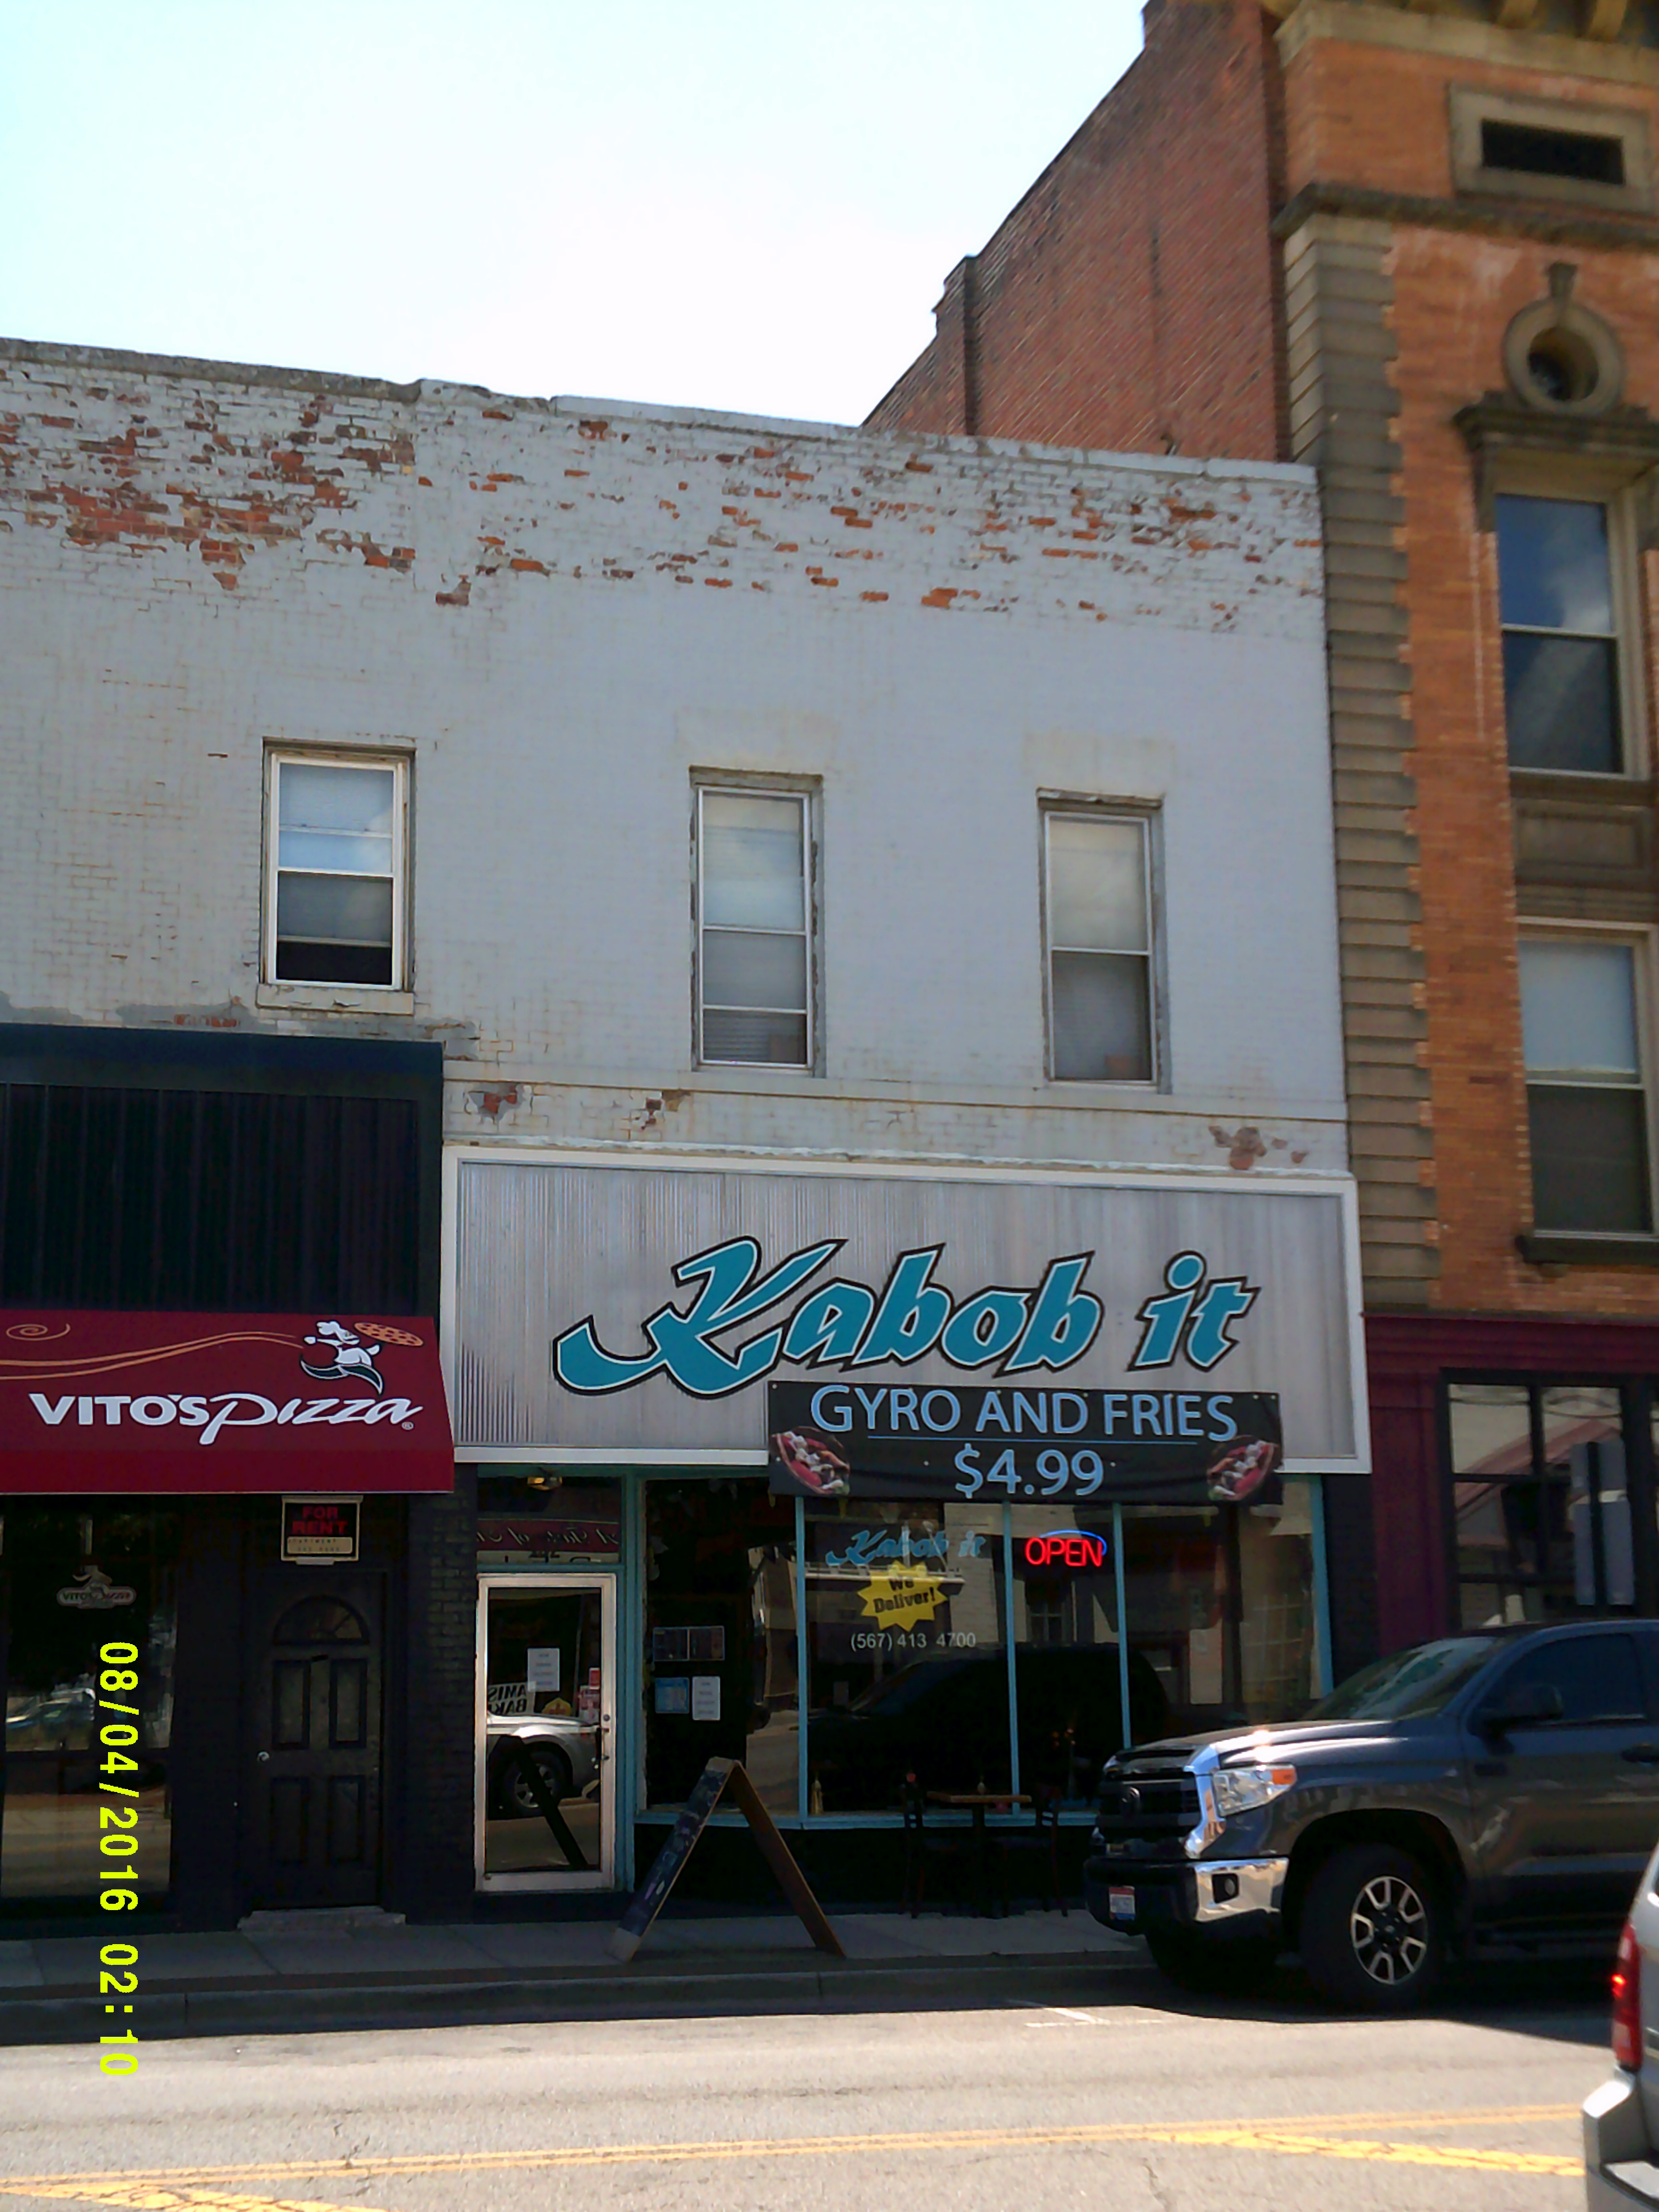 134 1/2 E. Wooster St. - B, Bowling Green, OH